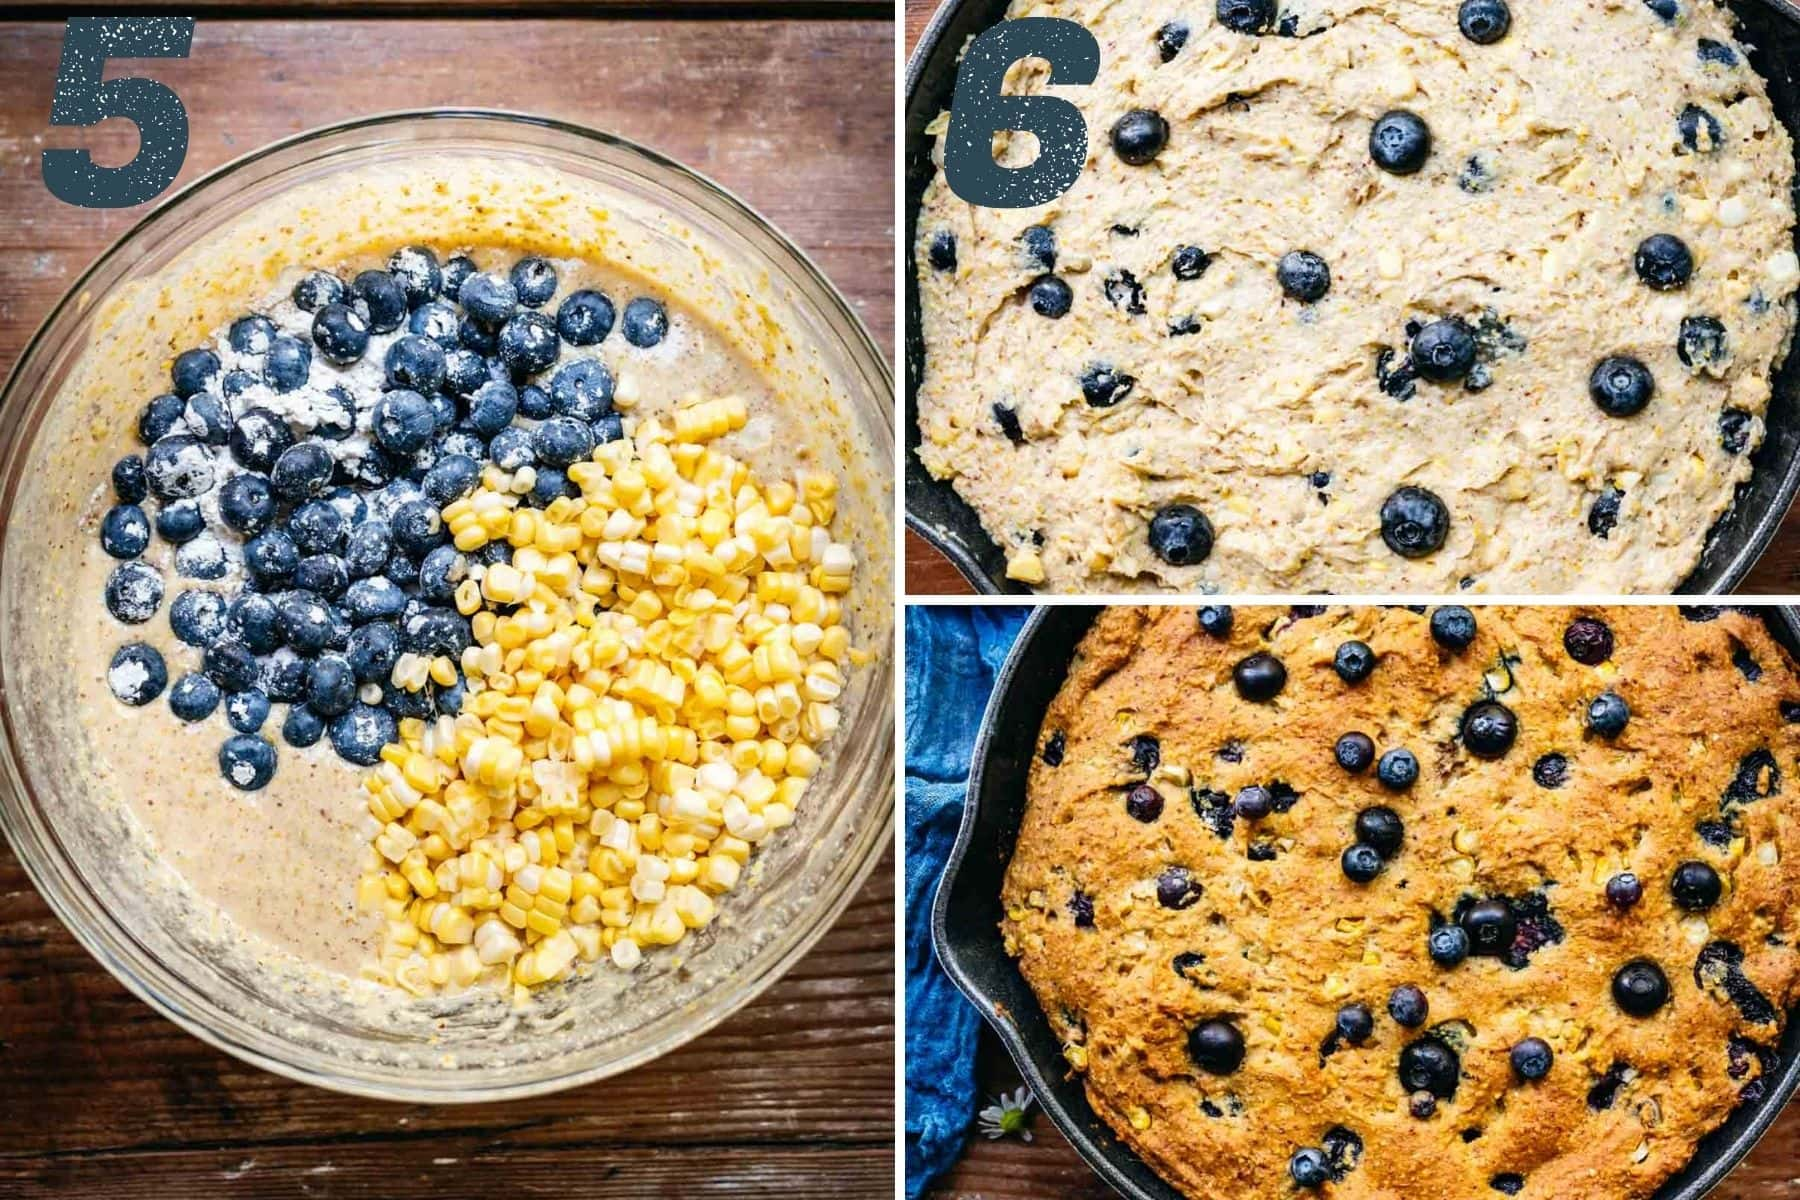 On the left: adding blueberries and corn to the batter. On the right: batter in skillet before and after cooking.